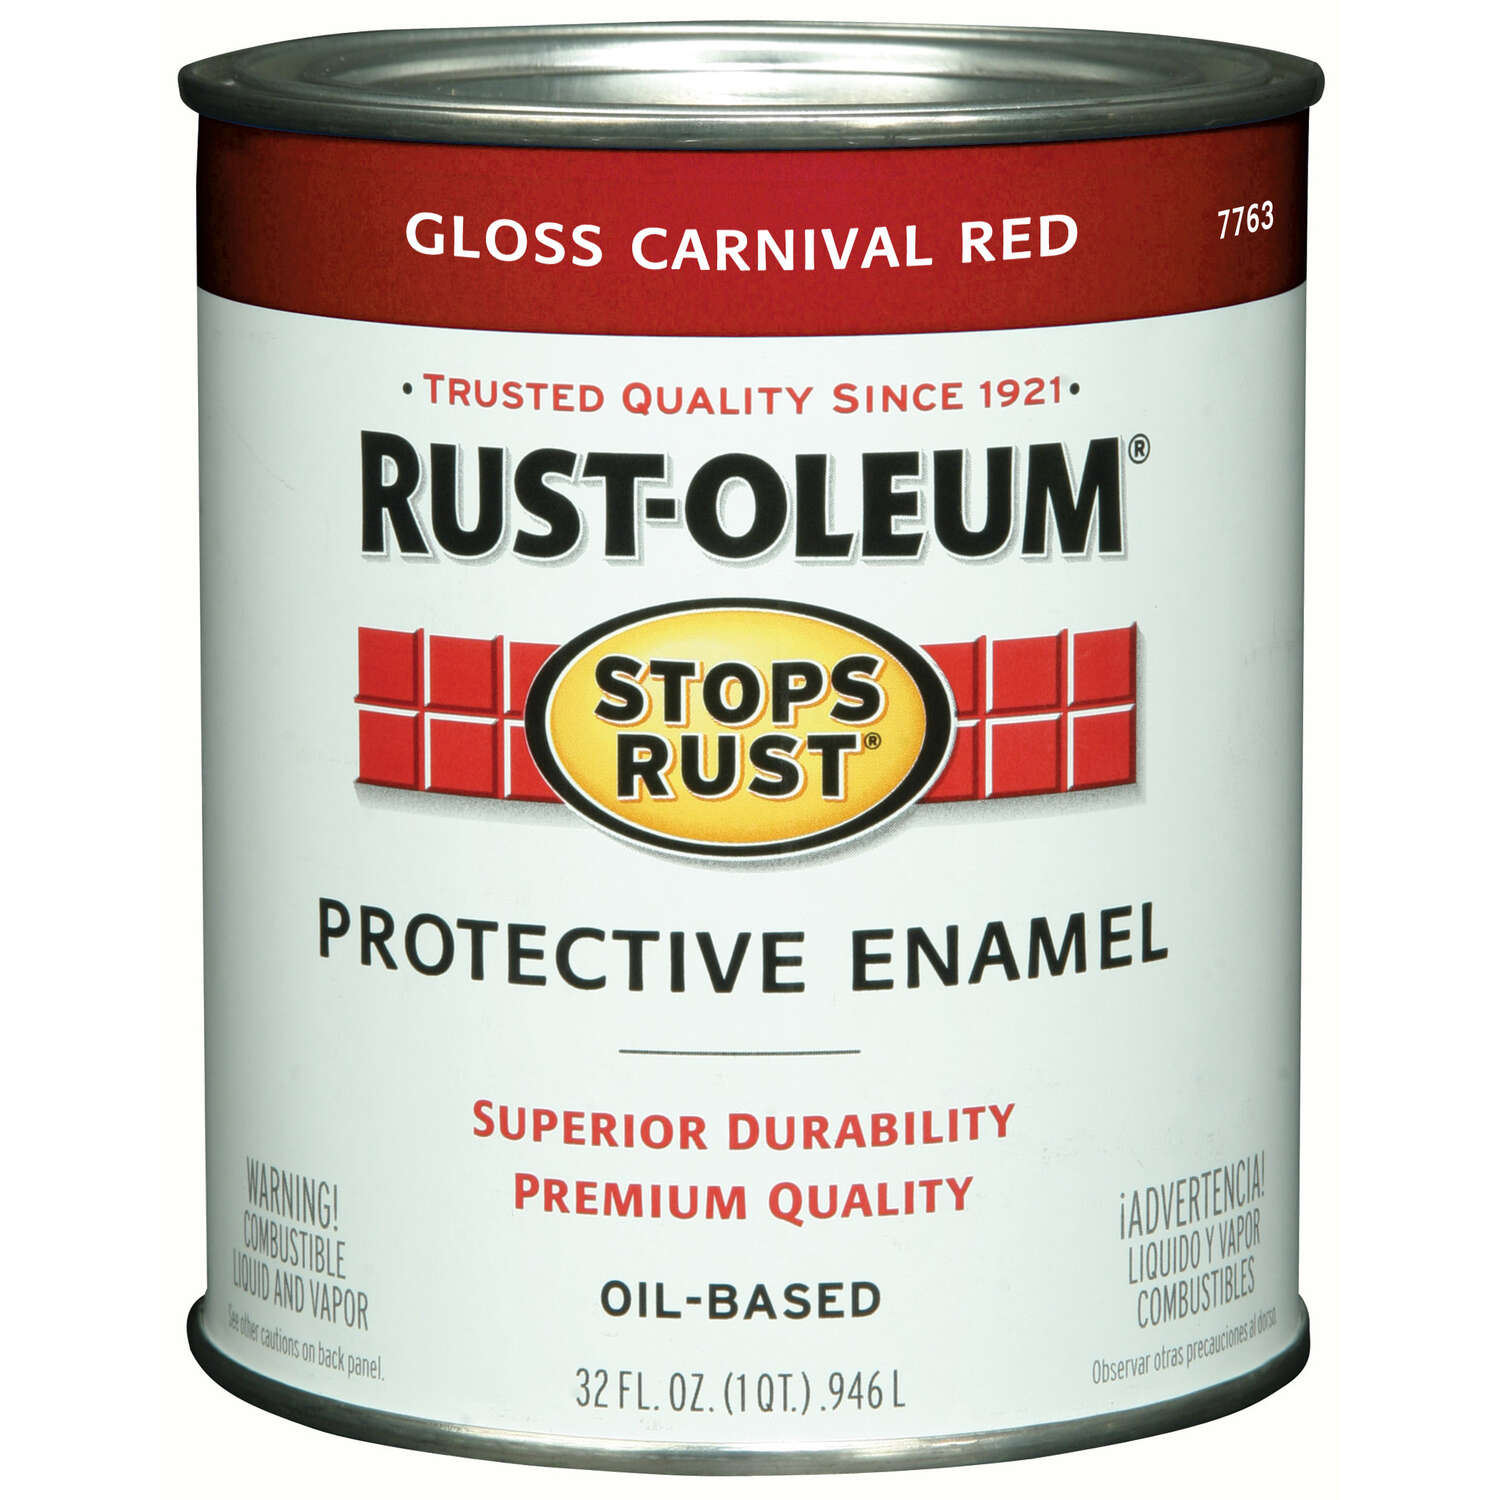 Rust-Oleum Stops Rust Indoor and Outdoor Gloss Carnival Red Oil-Based Protective Paint 1 qt.